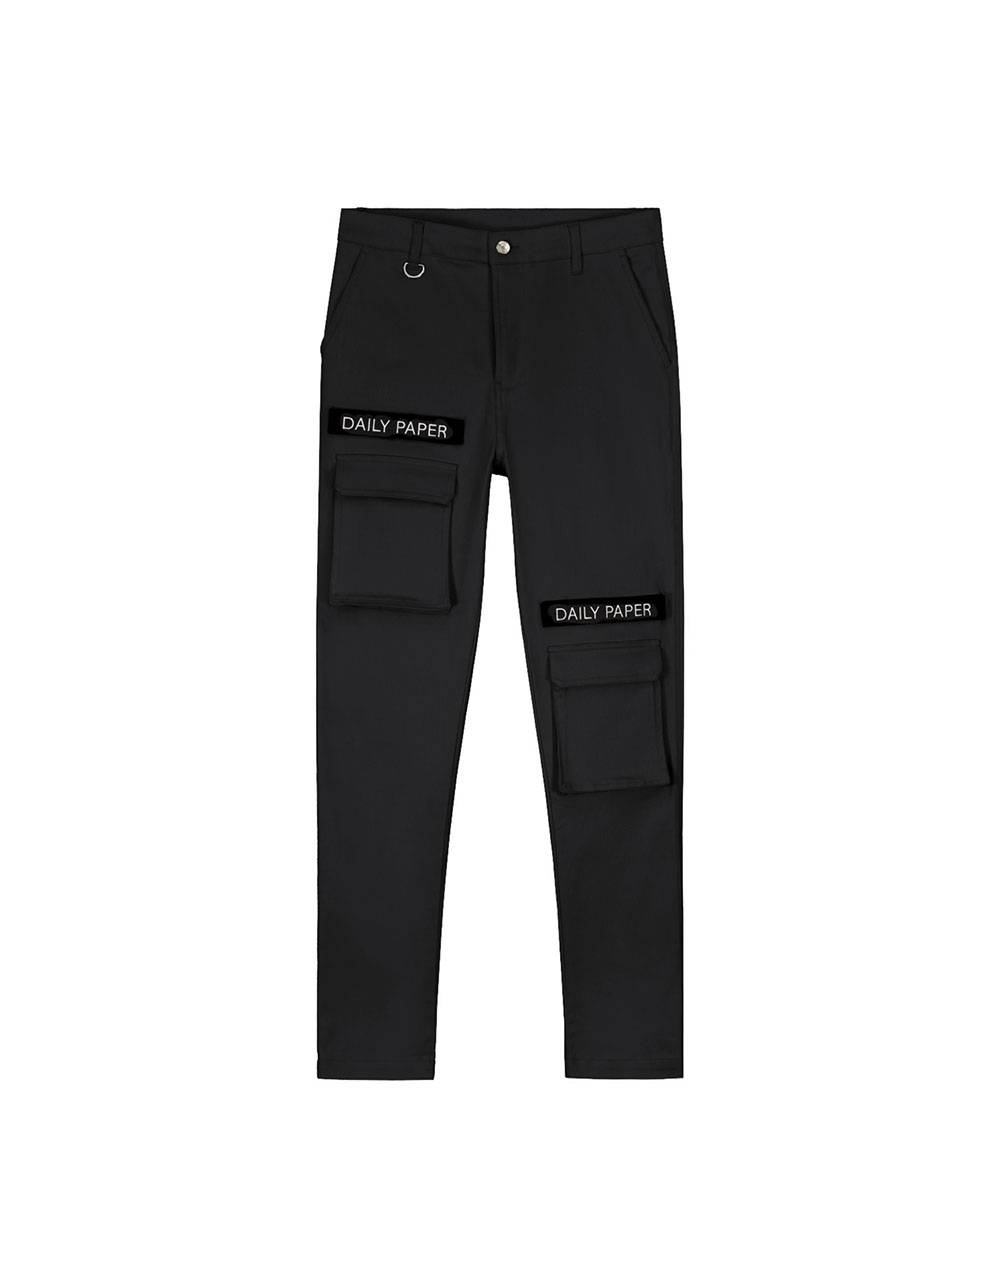 Daily Paper cargo pants - black DAILY PAPER Pant 94,26€